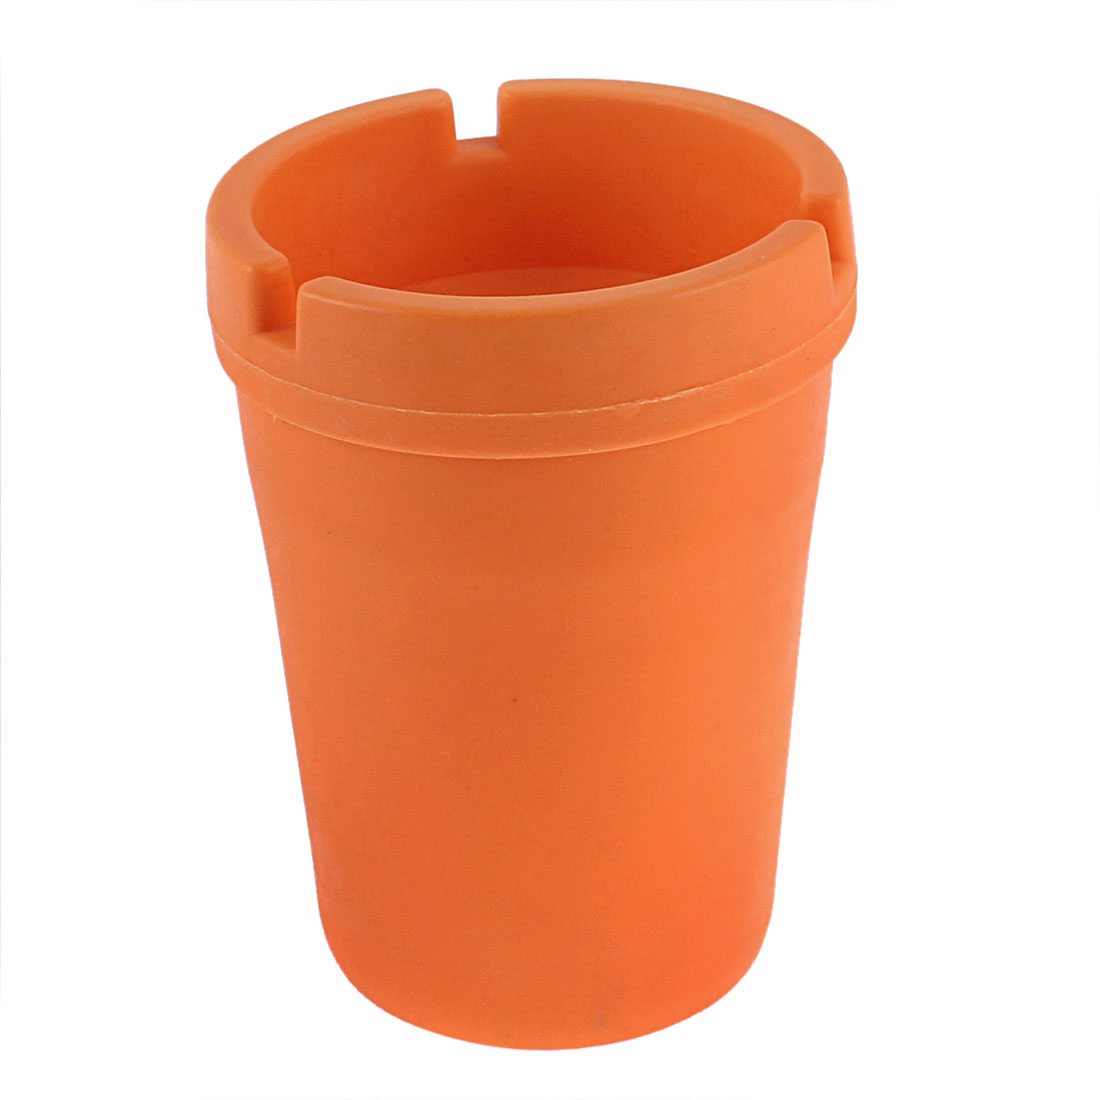 Car Plastic Self Extinguishing Butt Bucket Cigarette Ashtray Holder Orange